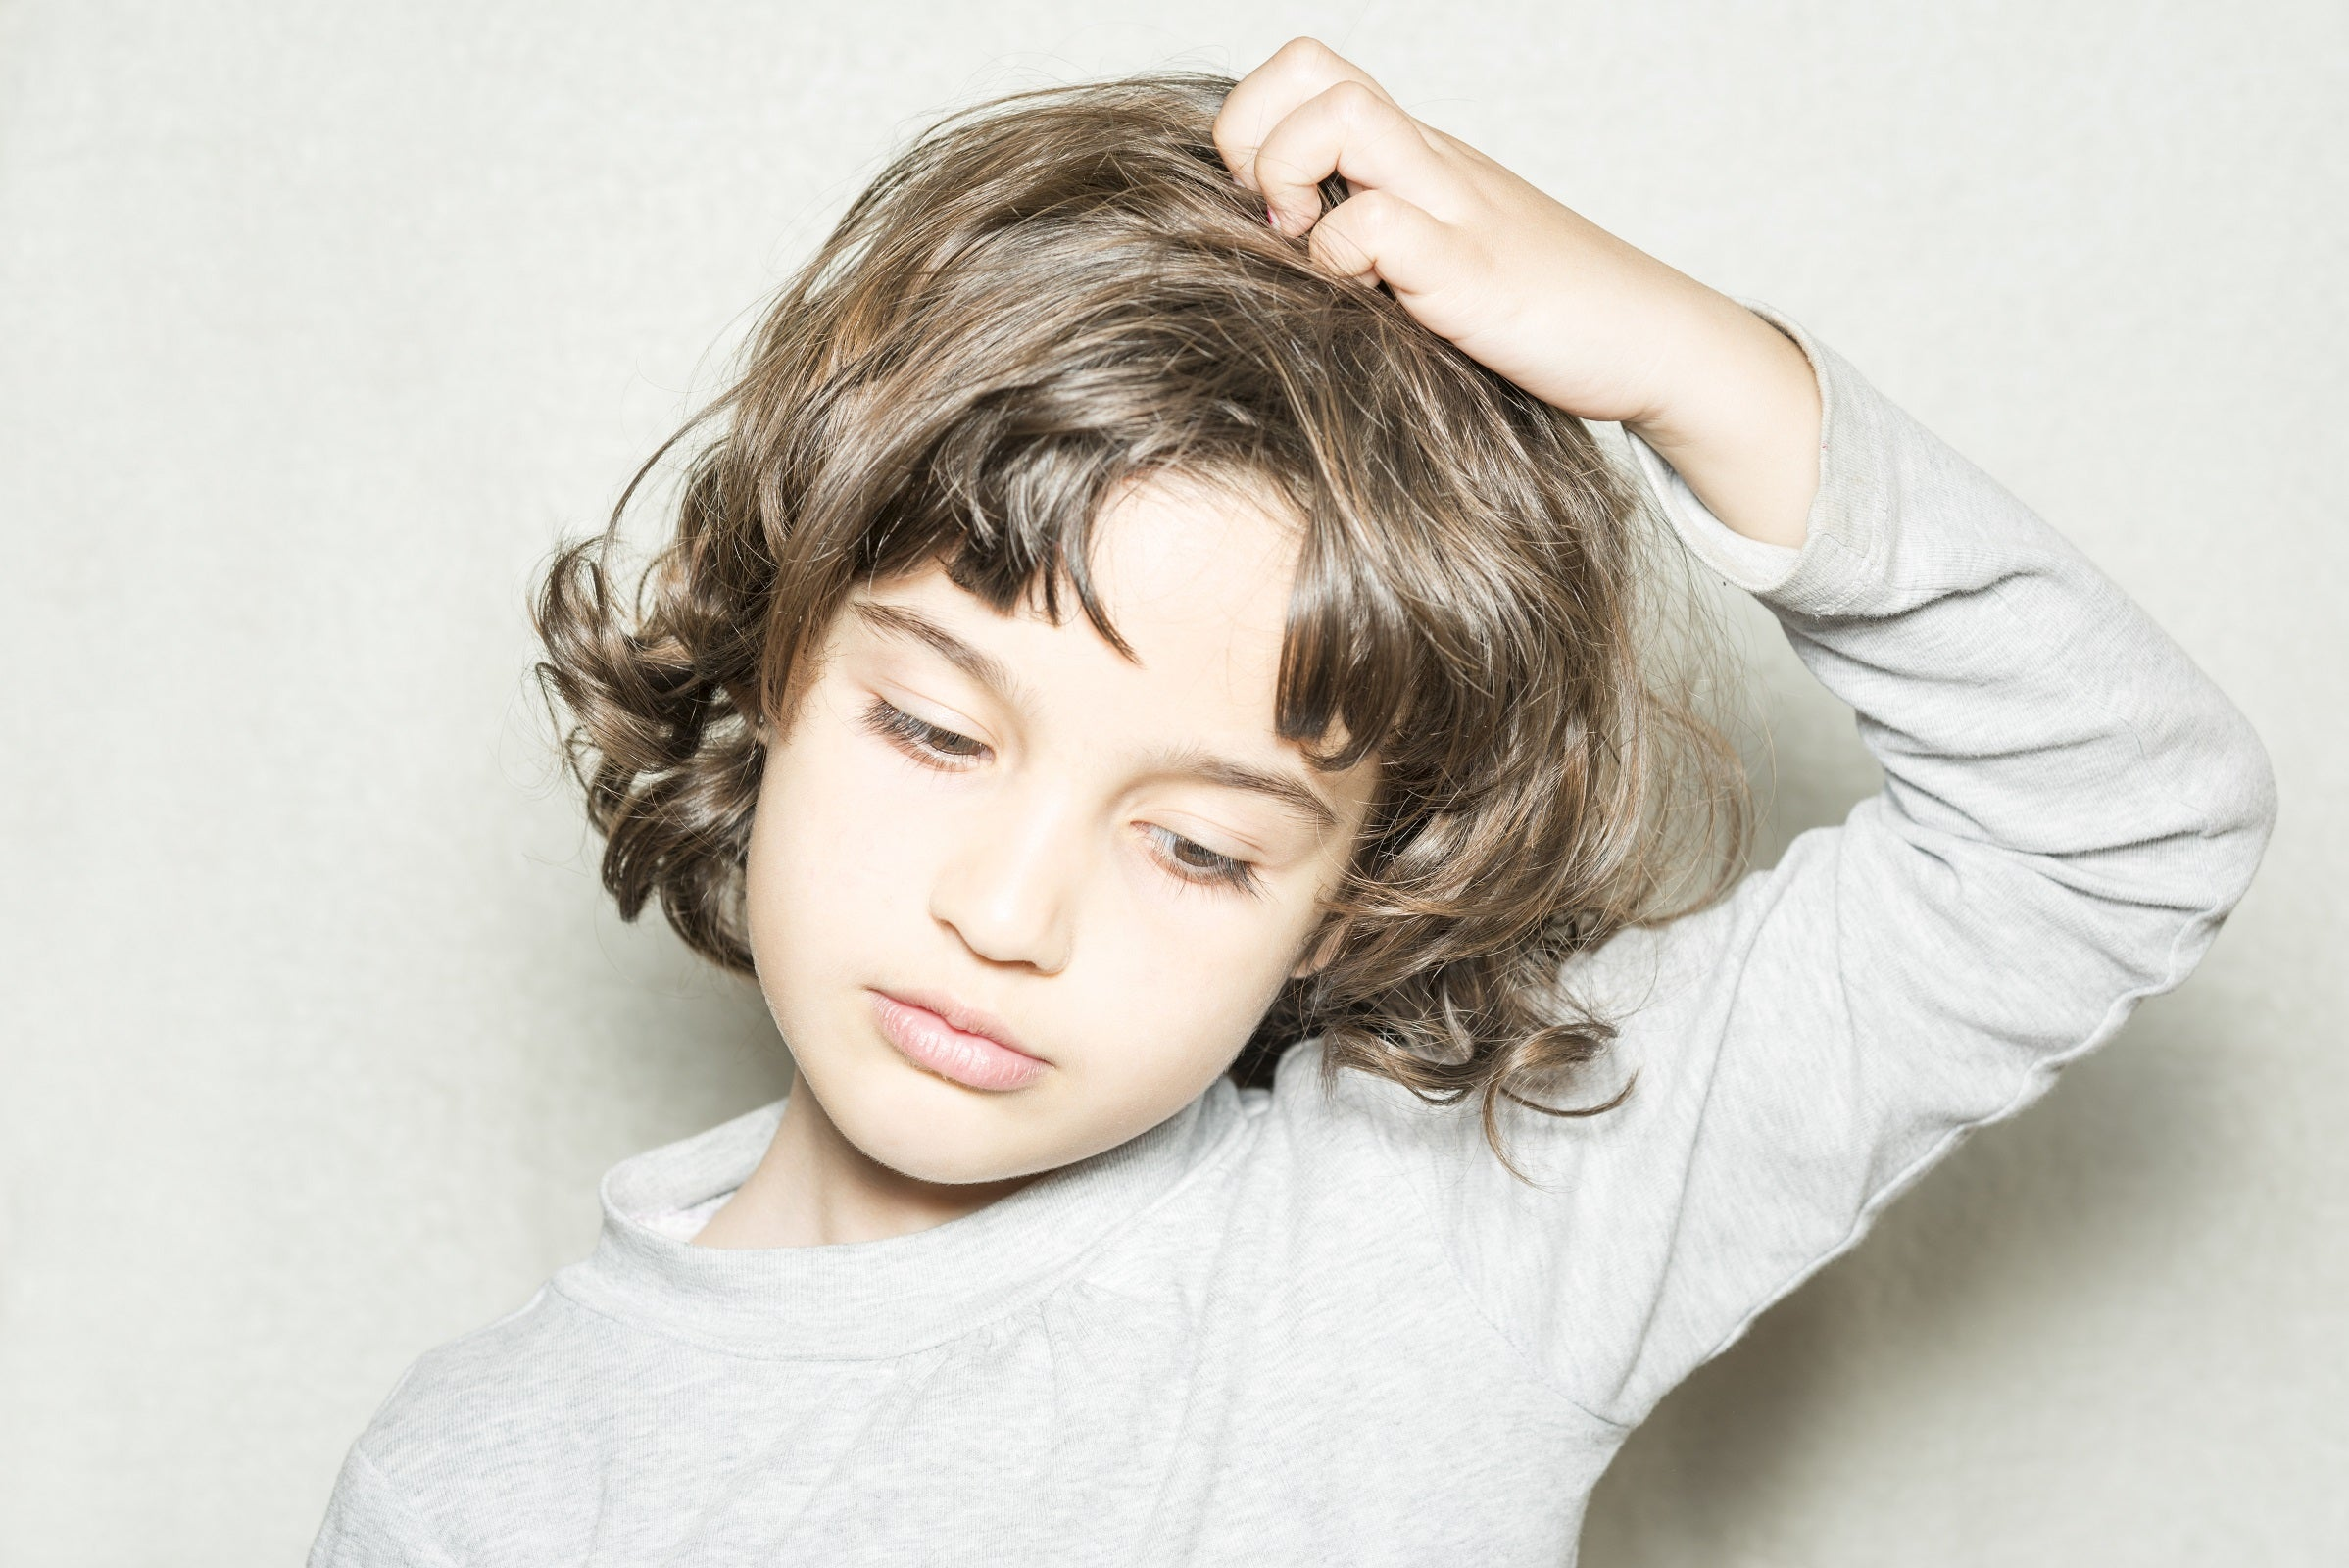 Combating Head Lice with Natural ingredients